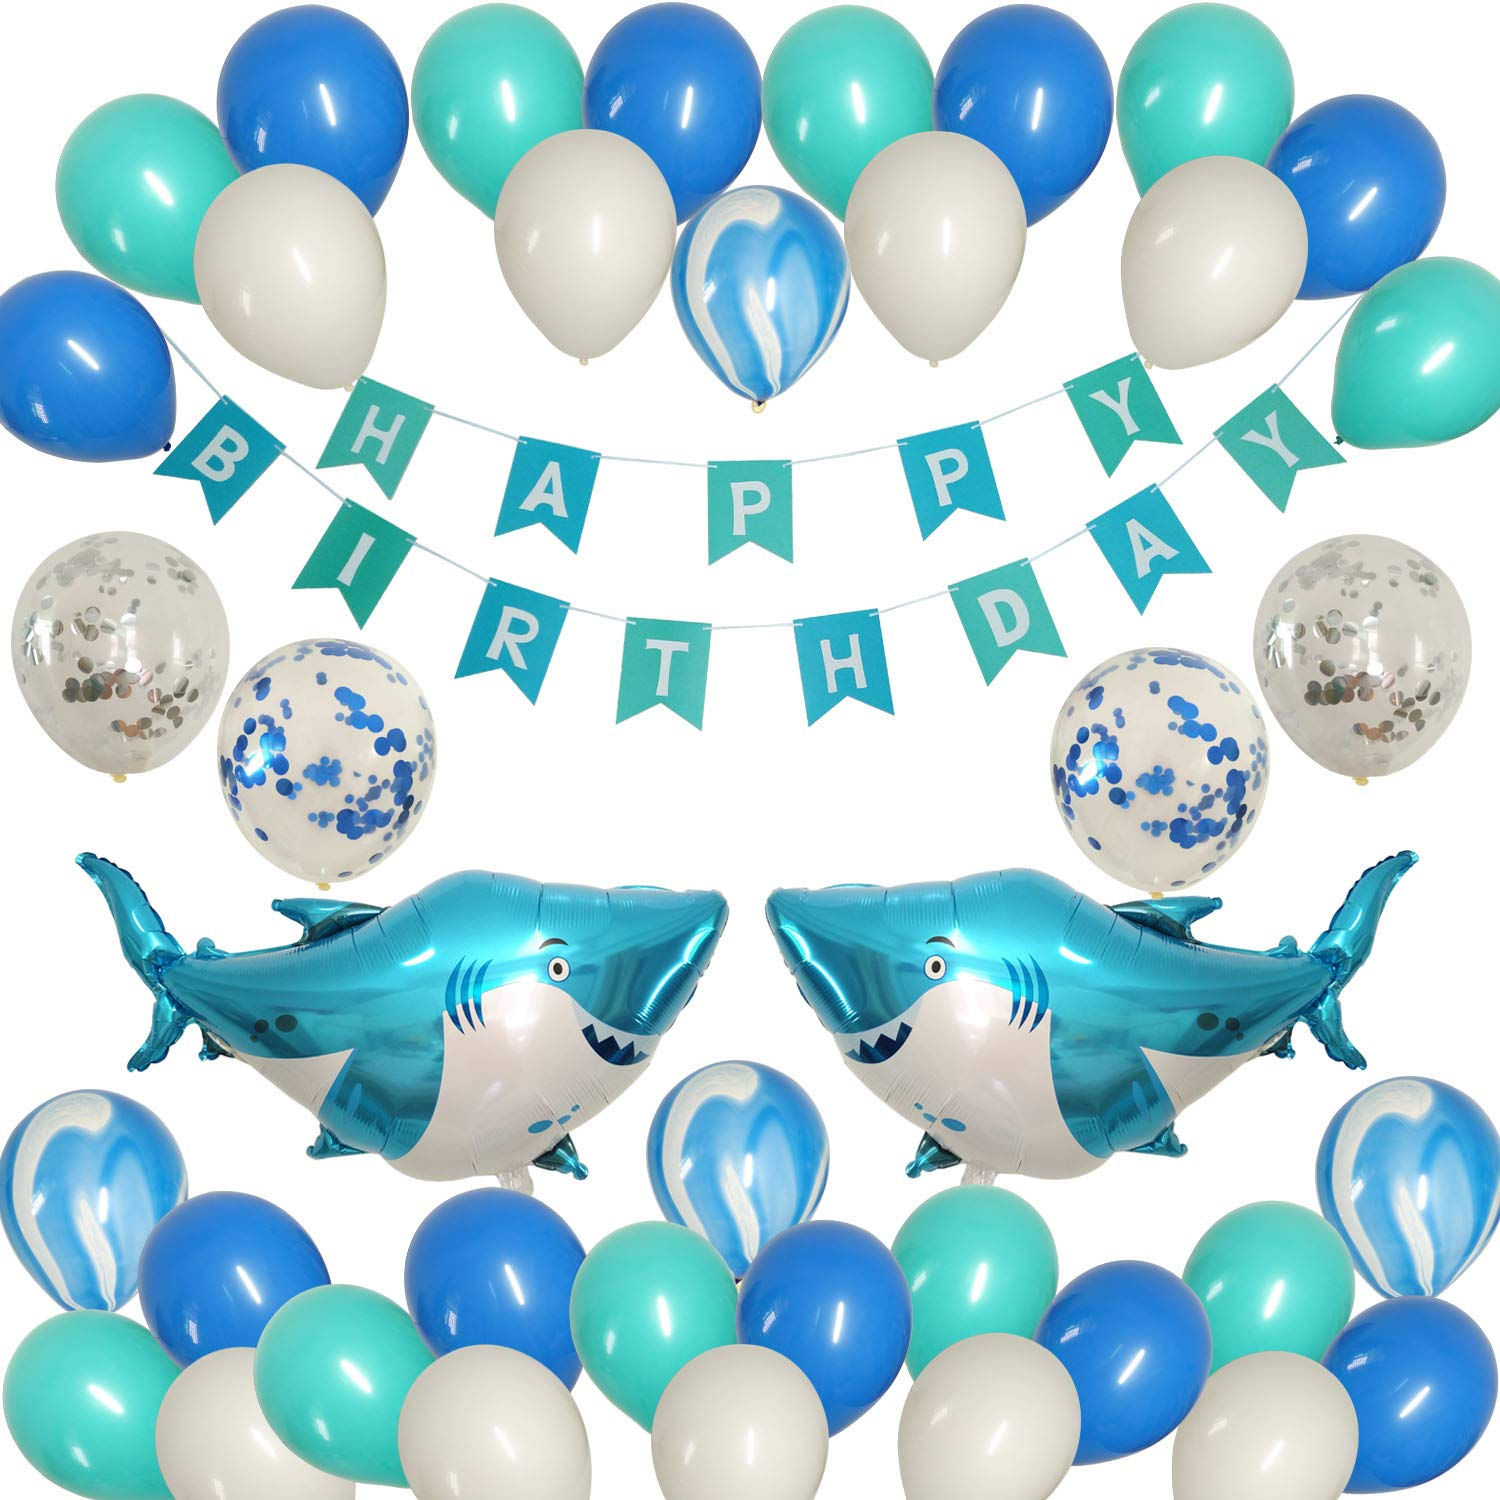 JAYKIDS Shark Balloons Ocean Theme Party Supplies - Sea Animals Tattoo Sticker, Big Shark Foil Balloons, Happy Birthday Banner, Ocean Color Confetti Marble and Latex Balloons, Baby Shower Birthday Party Decorations Set for Kids 1st 2nd 3rd 4-8 Years Old